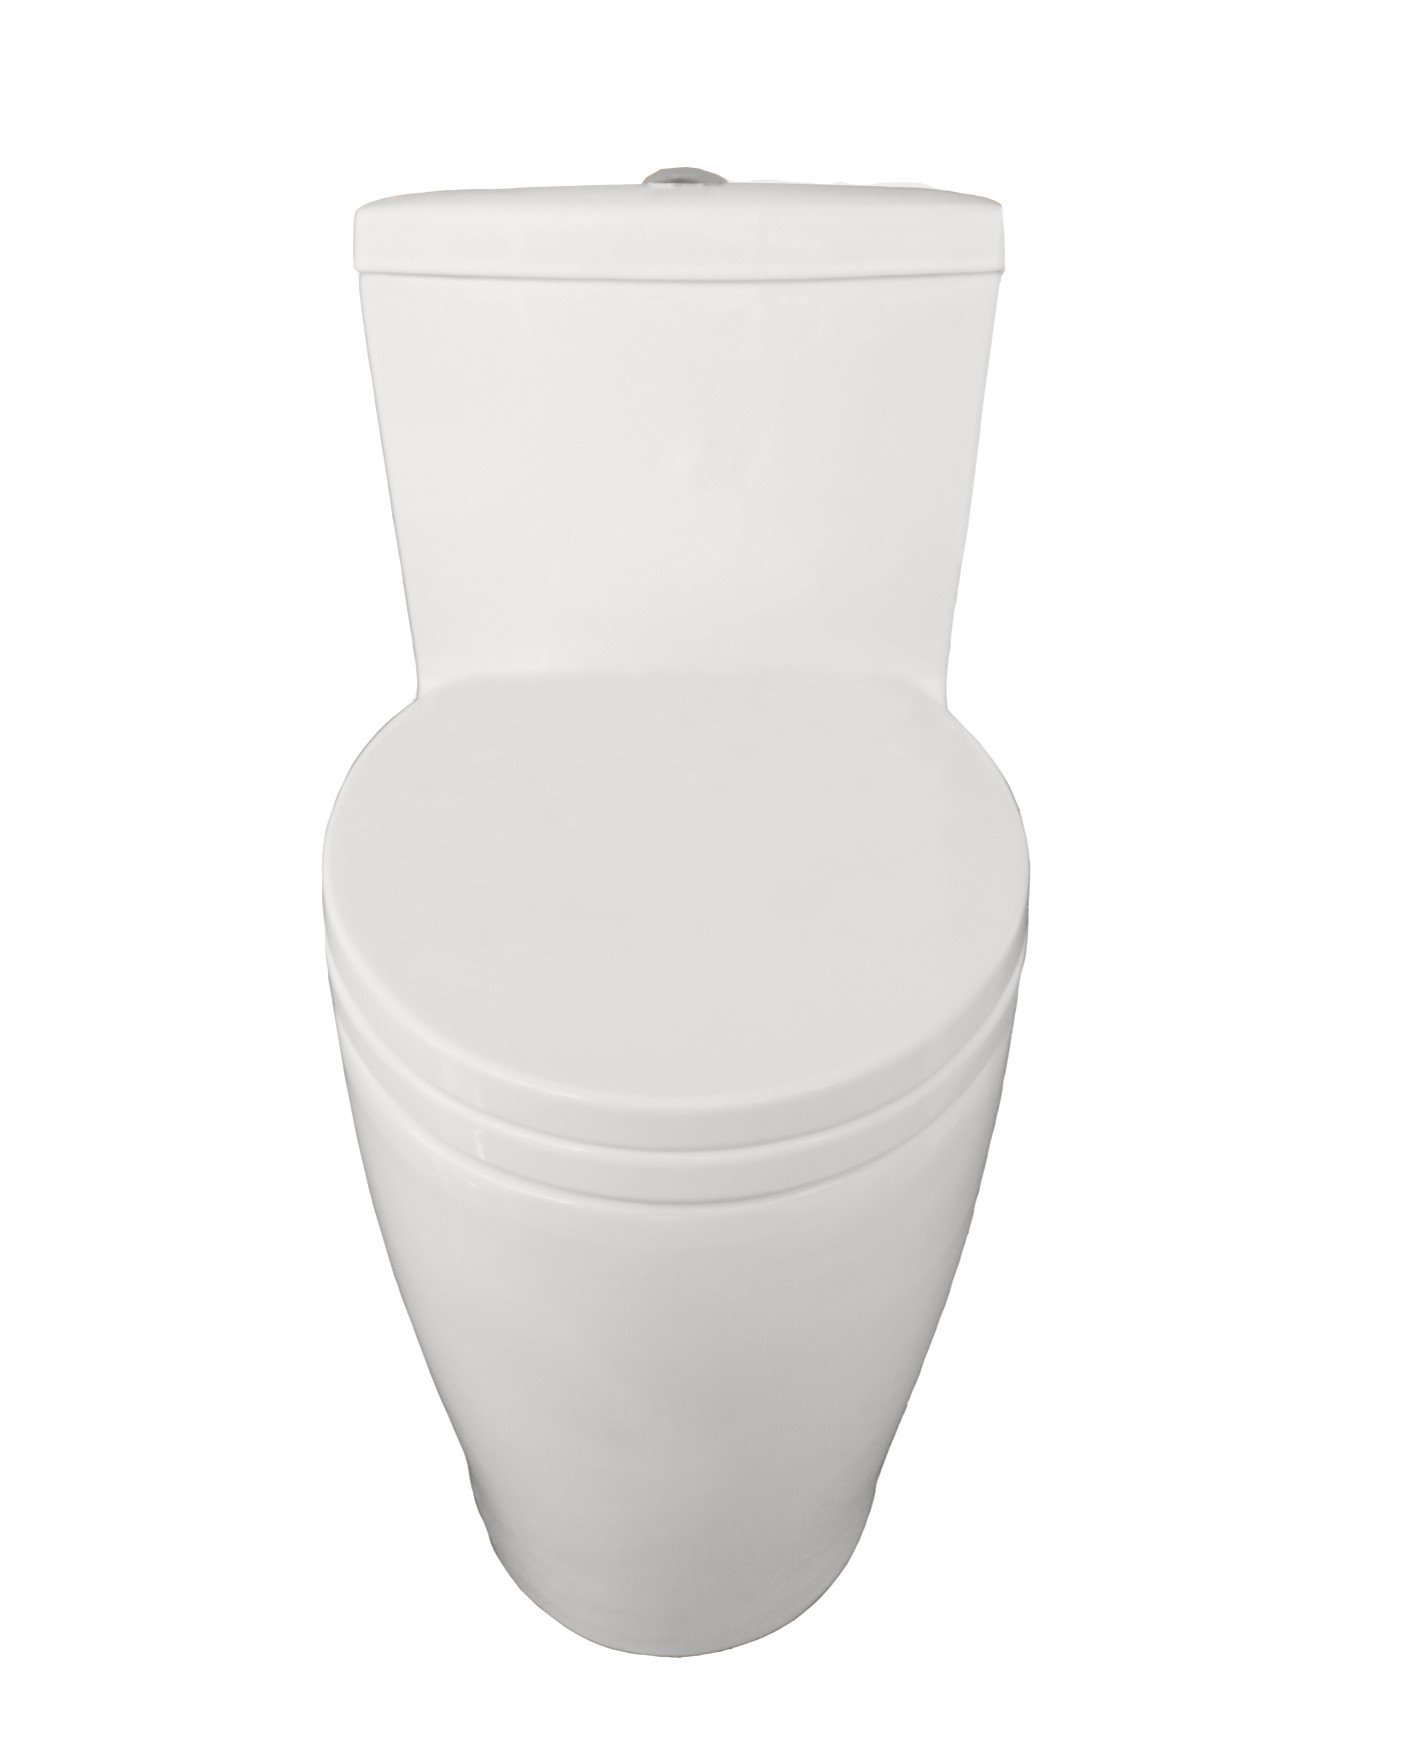 Eviva EVTL528 Softy Elongated One Piece Toilet with Soft Closing Seat Cover, High Efficiency, Water Sense and Cupc Certified with the United States Plumbing Standards Combination, Cotton White by Eviva